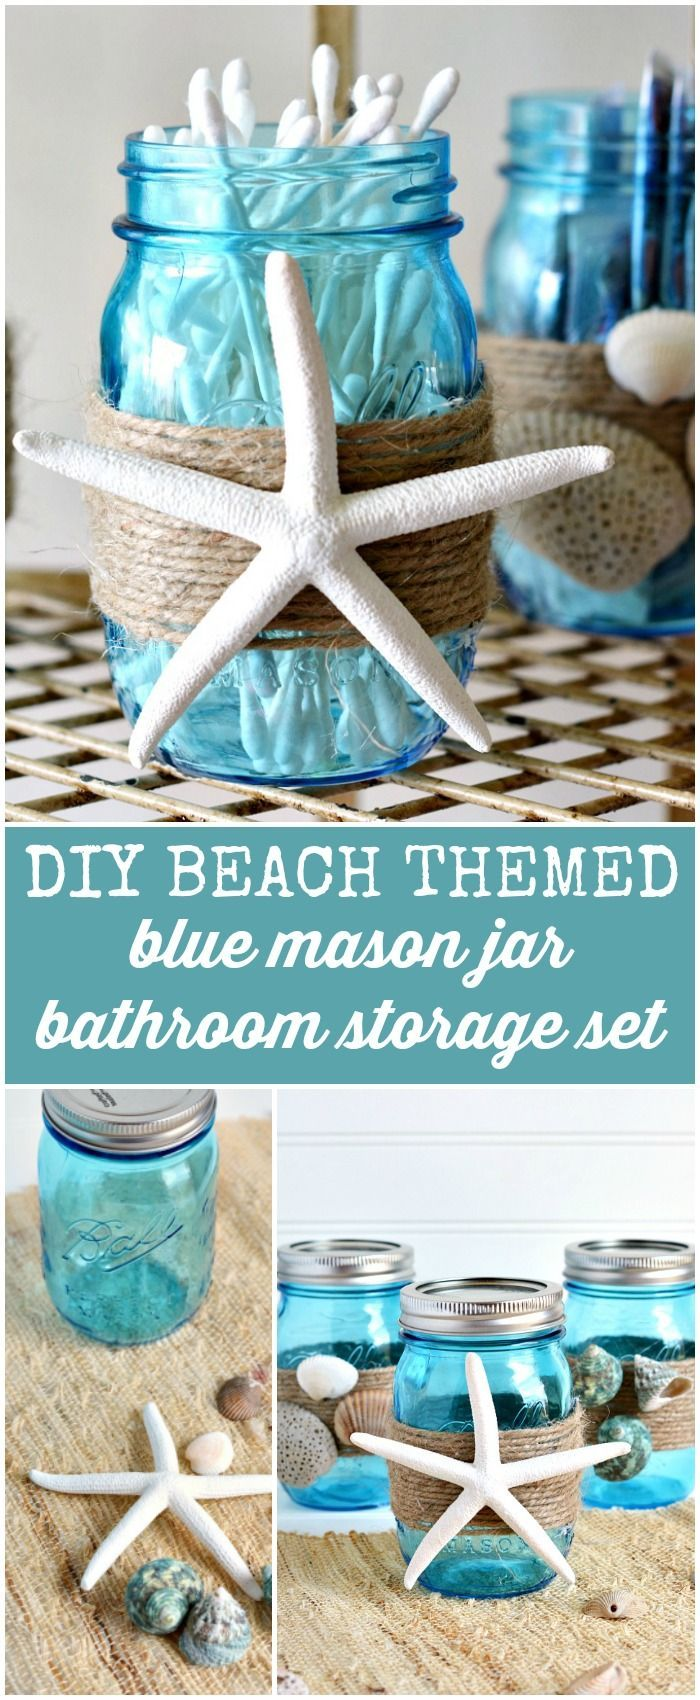 Mason Jar Bathroom Accessories 25 Best Ideas About Mason Jar Organizer On Pinterest Rustic